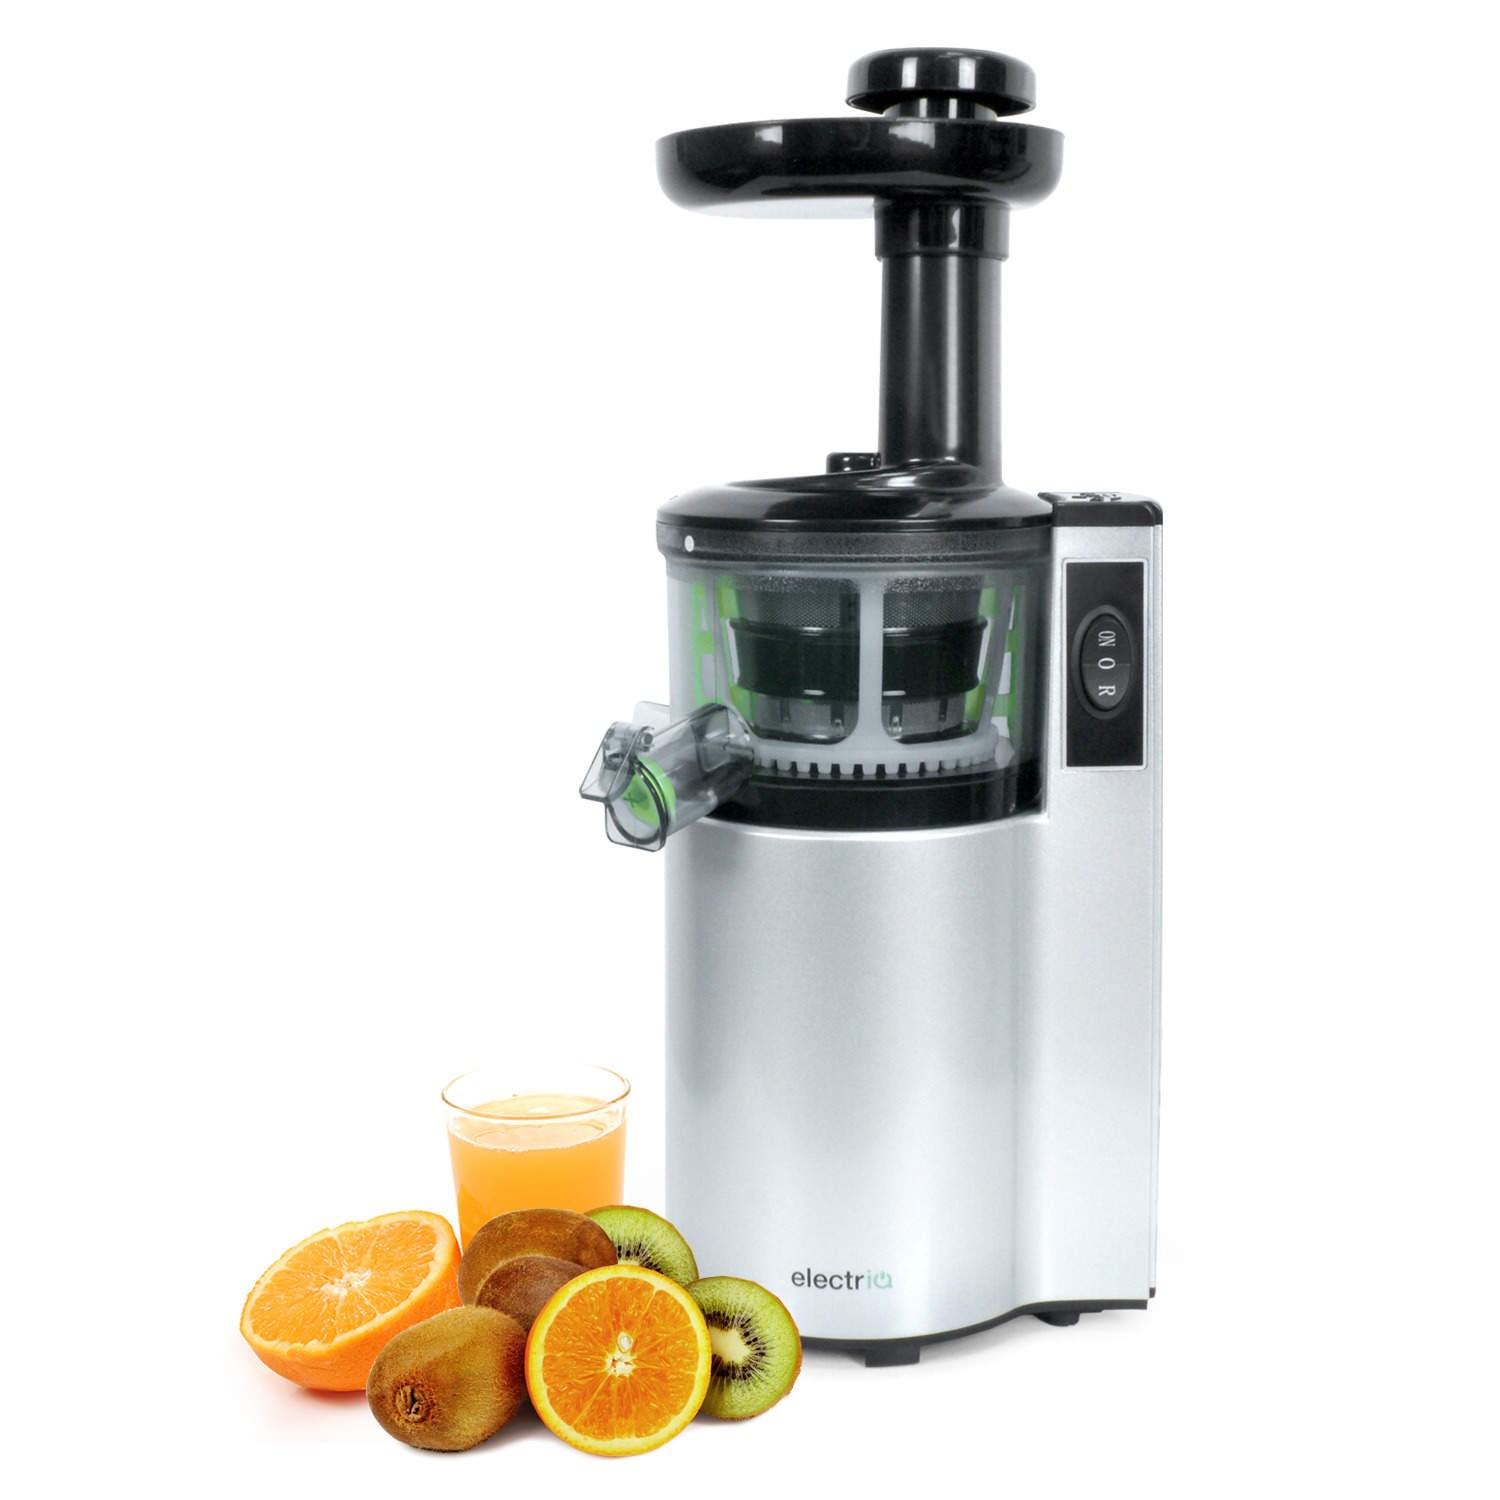 Juice Wizard Slow Juicer : ElectriQ vertical Slow Masticating Juicer Fruit vegetable Juice Extractor eBay